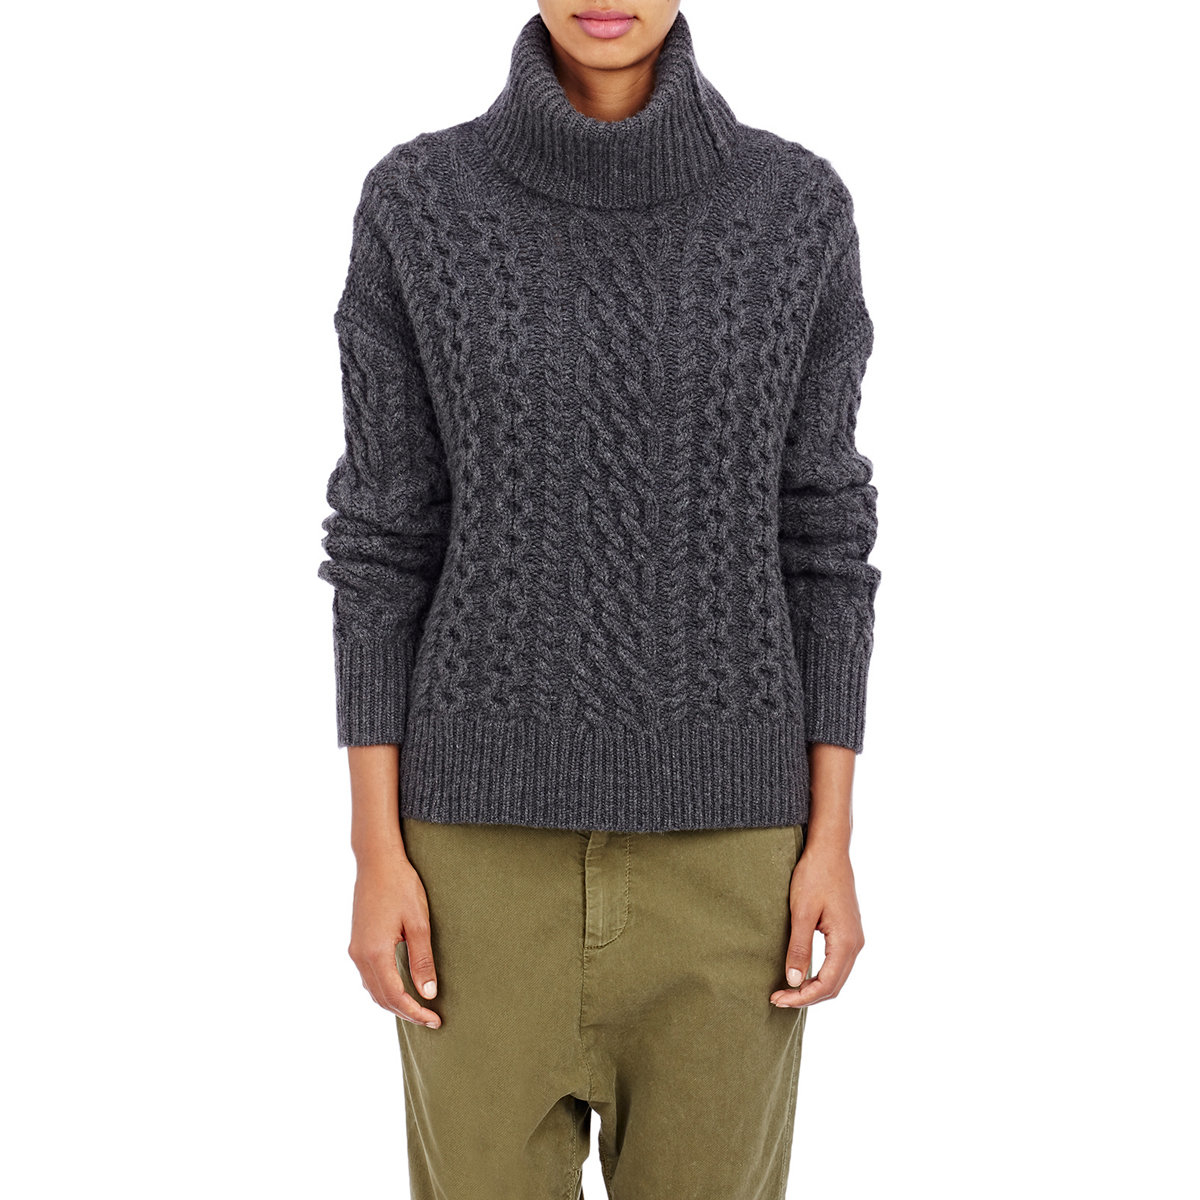 Nili lotan Cable-knit Turtleneck Sweater in Black   Lyst